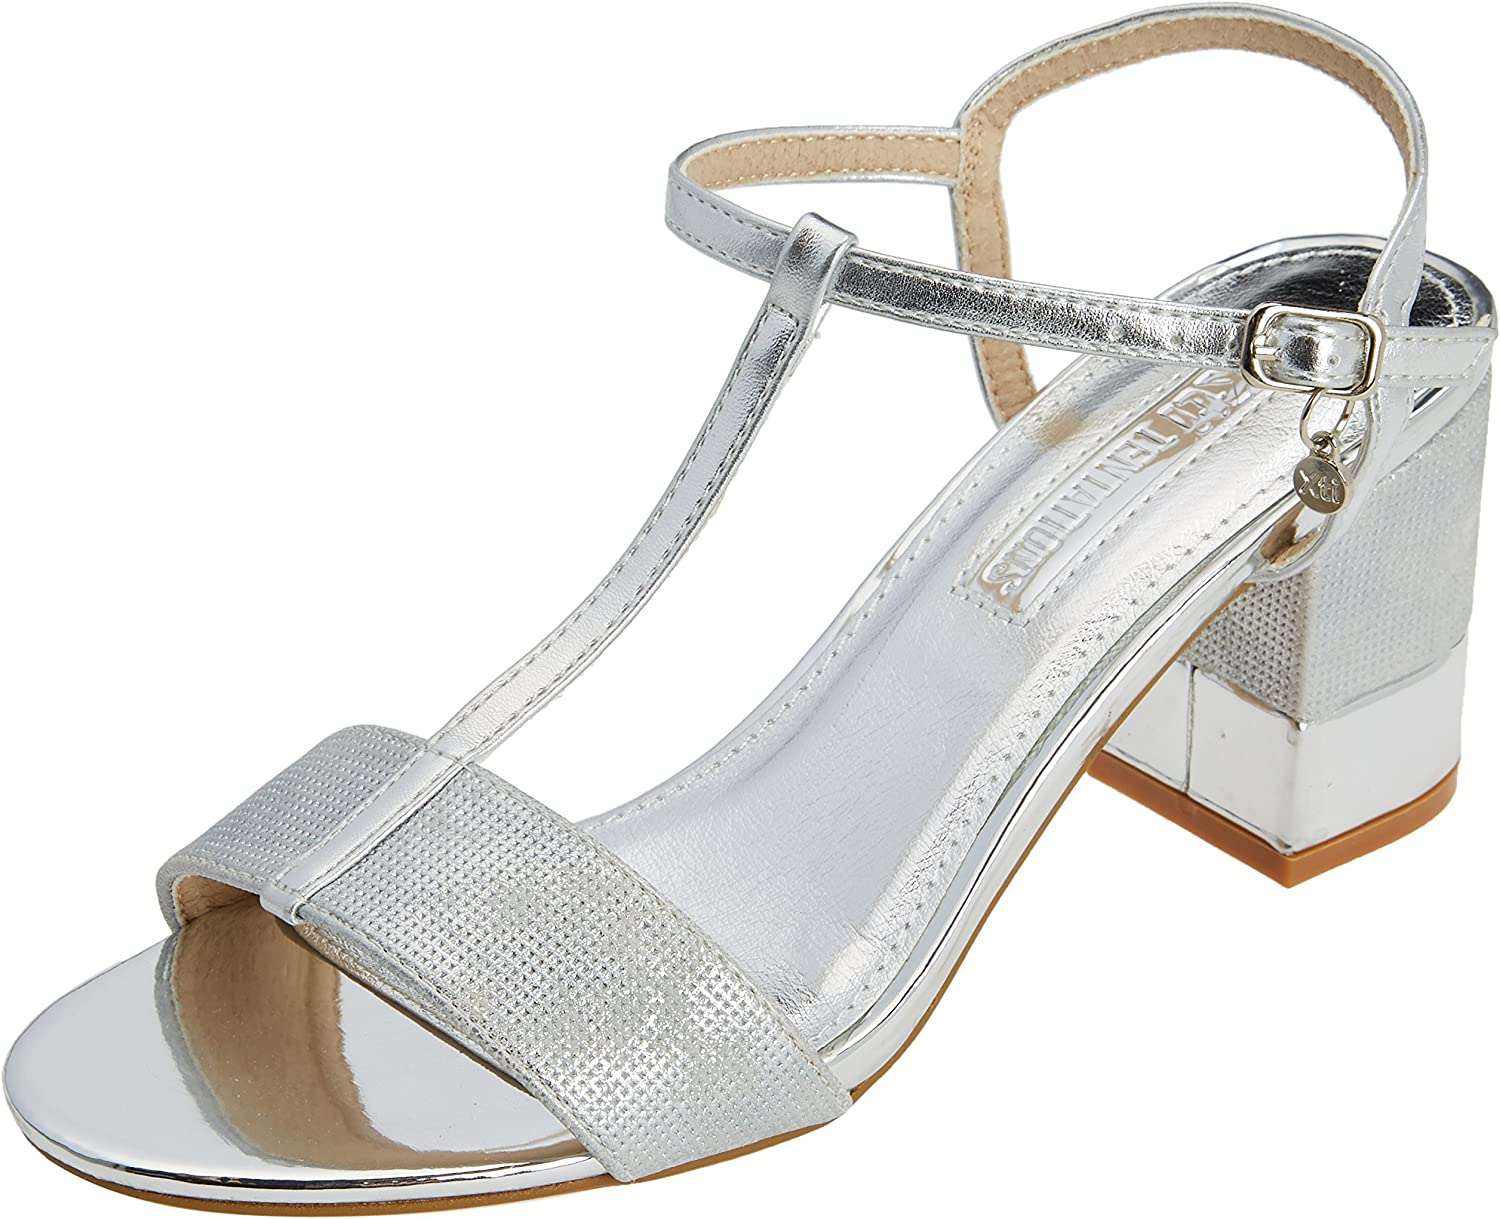 XTI TENTATIONS shoes Woman Sandals Heel 30681 silver